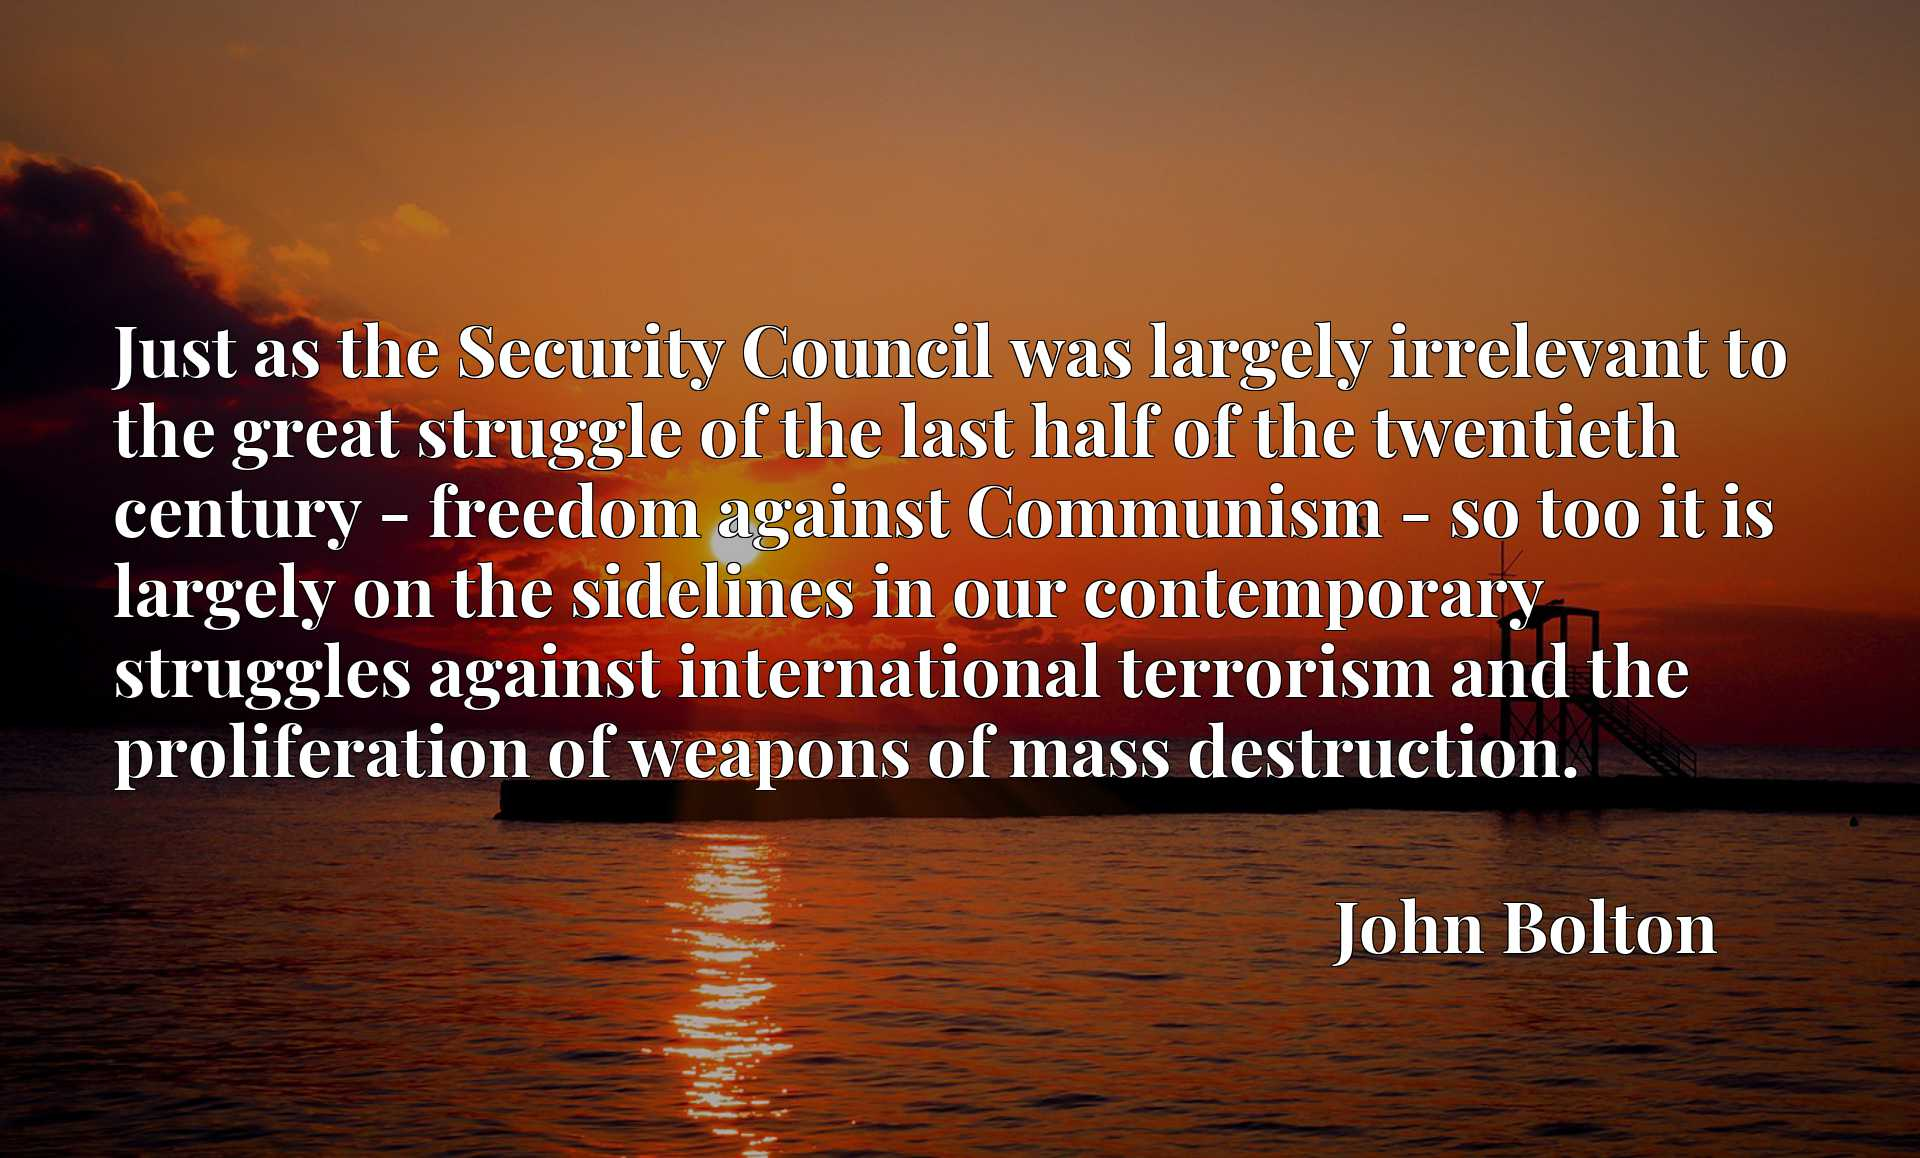 Just as the Security Council was largely irrelevant to the great struggle of the last half of the twentieth century - freedom against Communism - so too it is largely on the sidelines in our contemporary struggles against international terrorism and the proliferation of weapons of mass destruction.